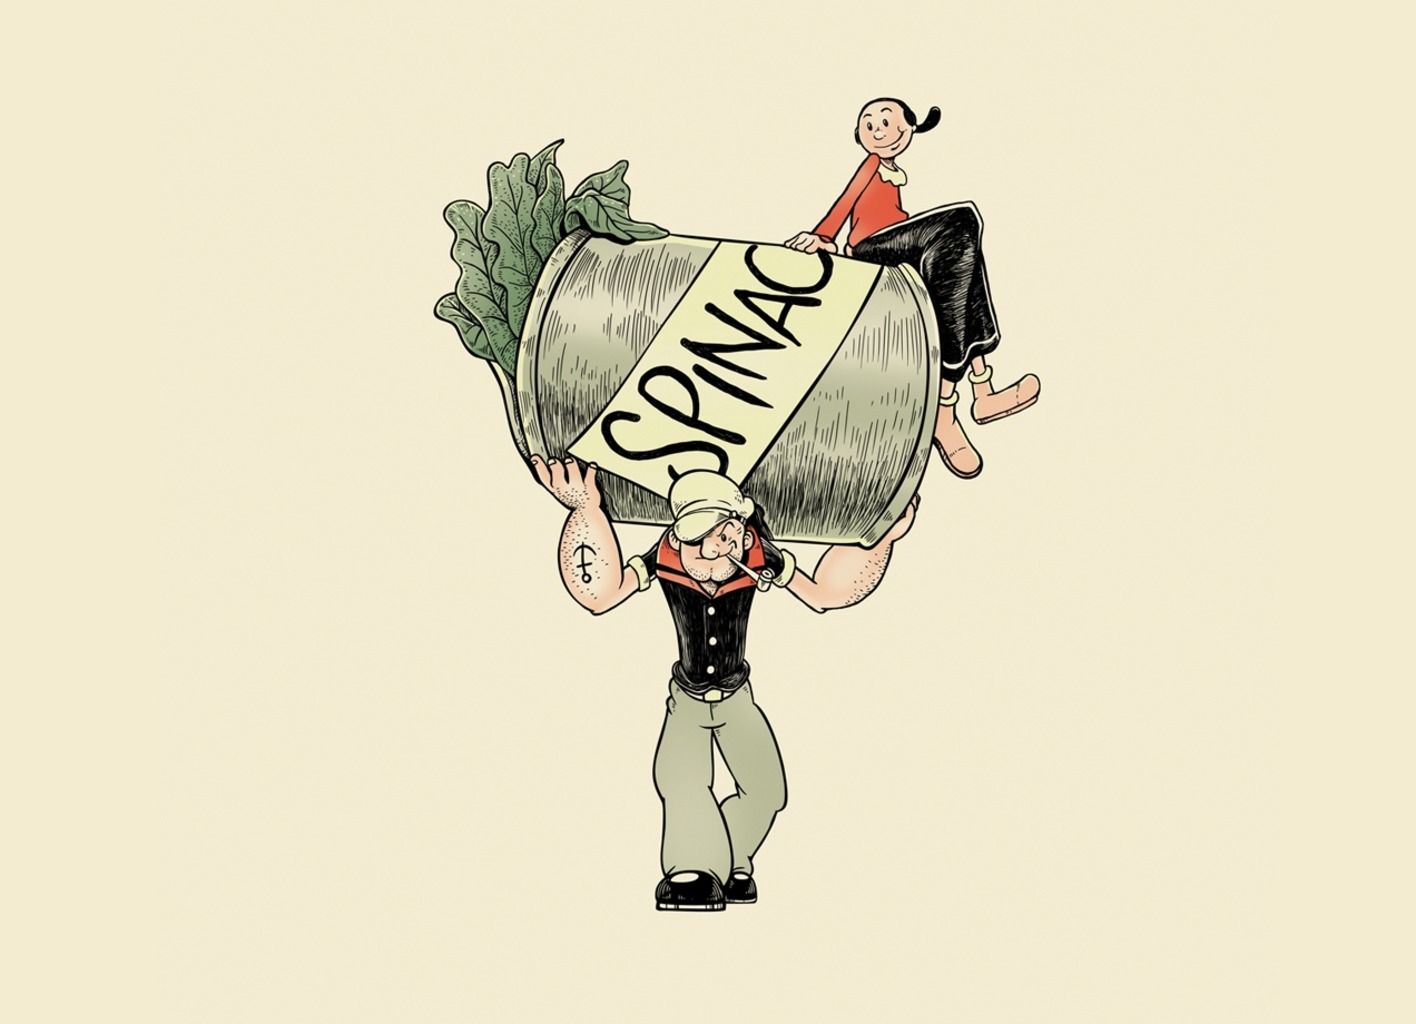 Threadless: The Sailor Man with the Spinach Can